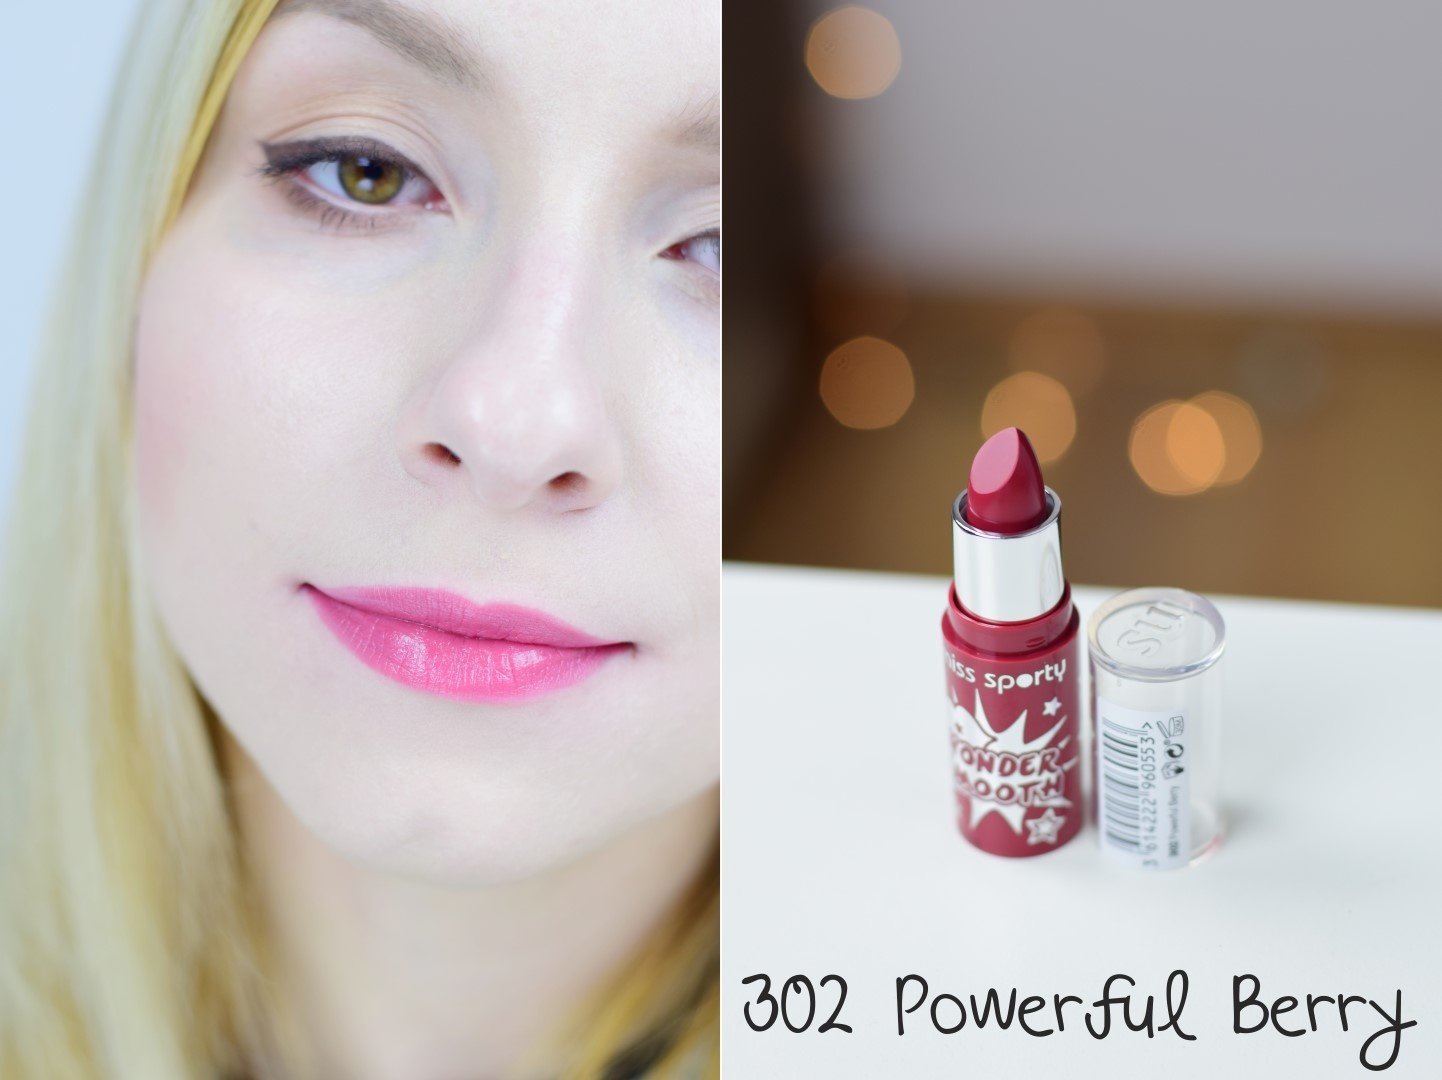 miss_sporty_wonder_smooth_blog_opinia_recenzja_swatche_powerful_berry_302